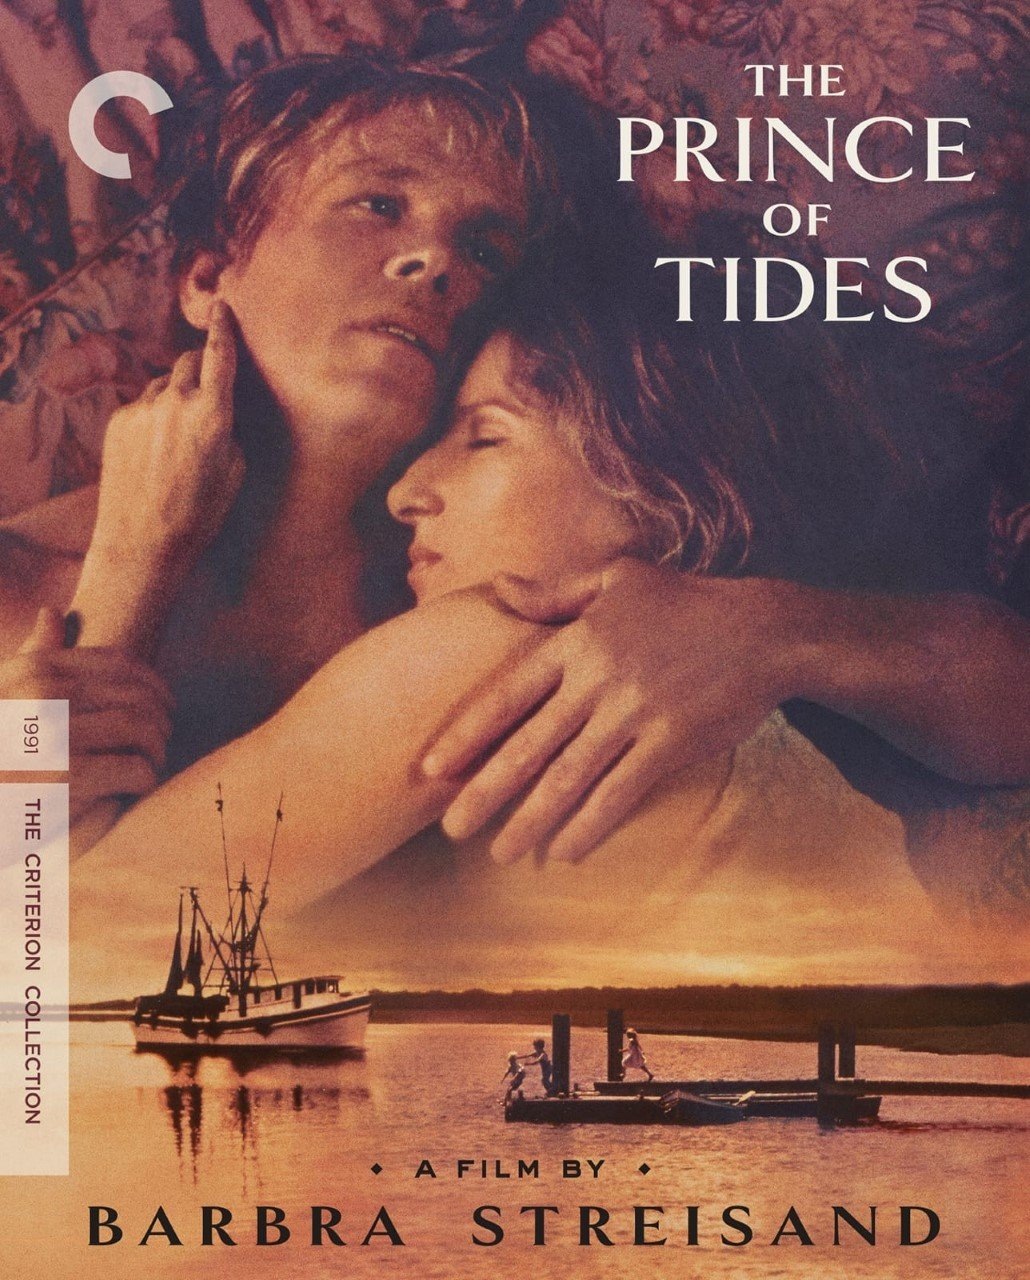 The Prince of Tides Criterion Edition – Out Now!